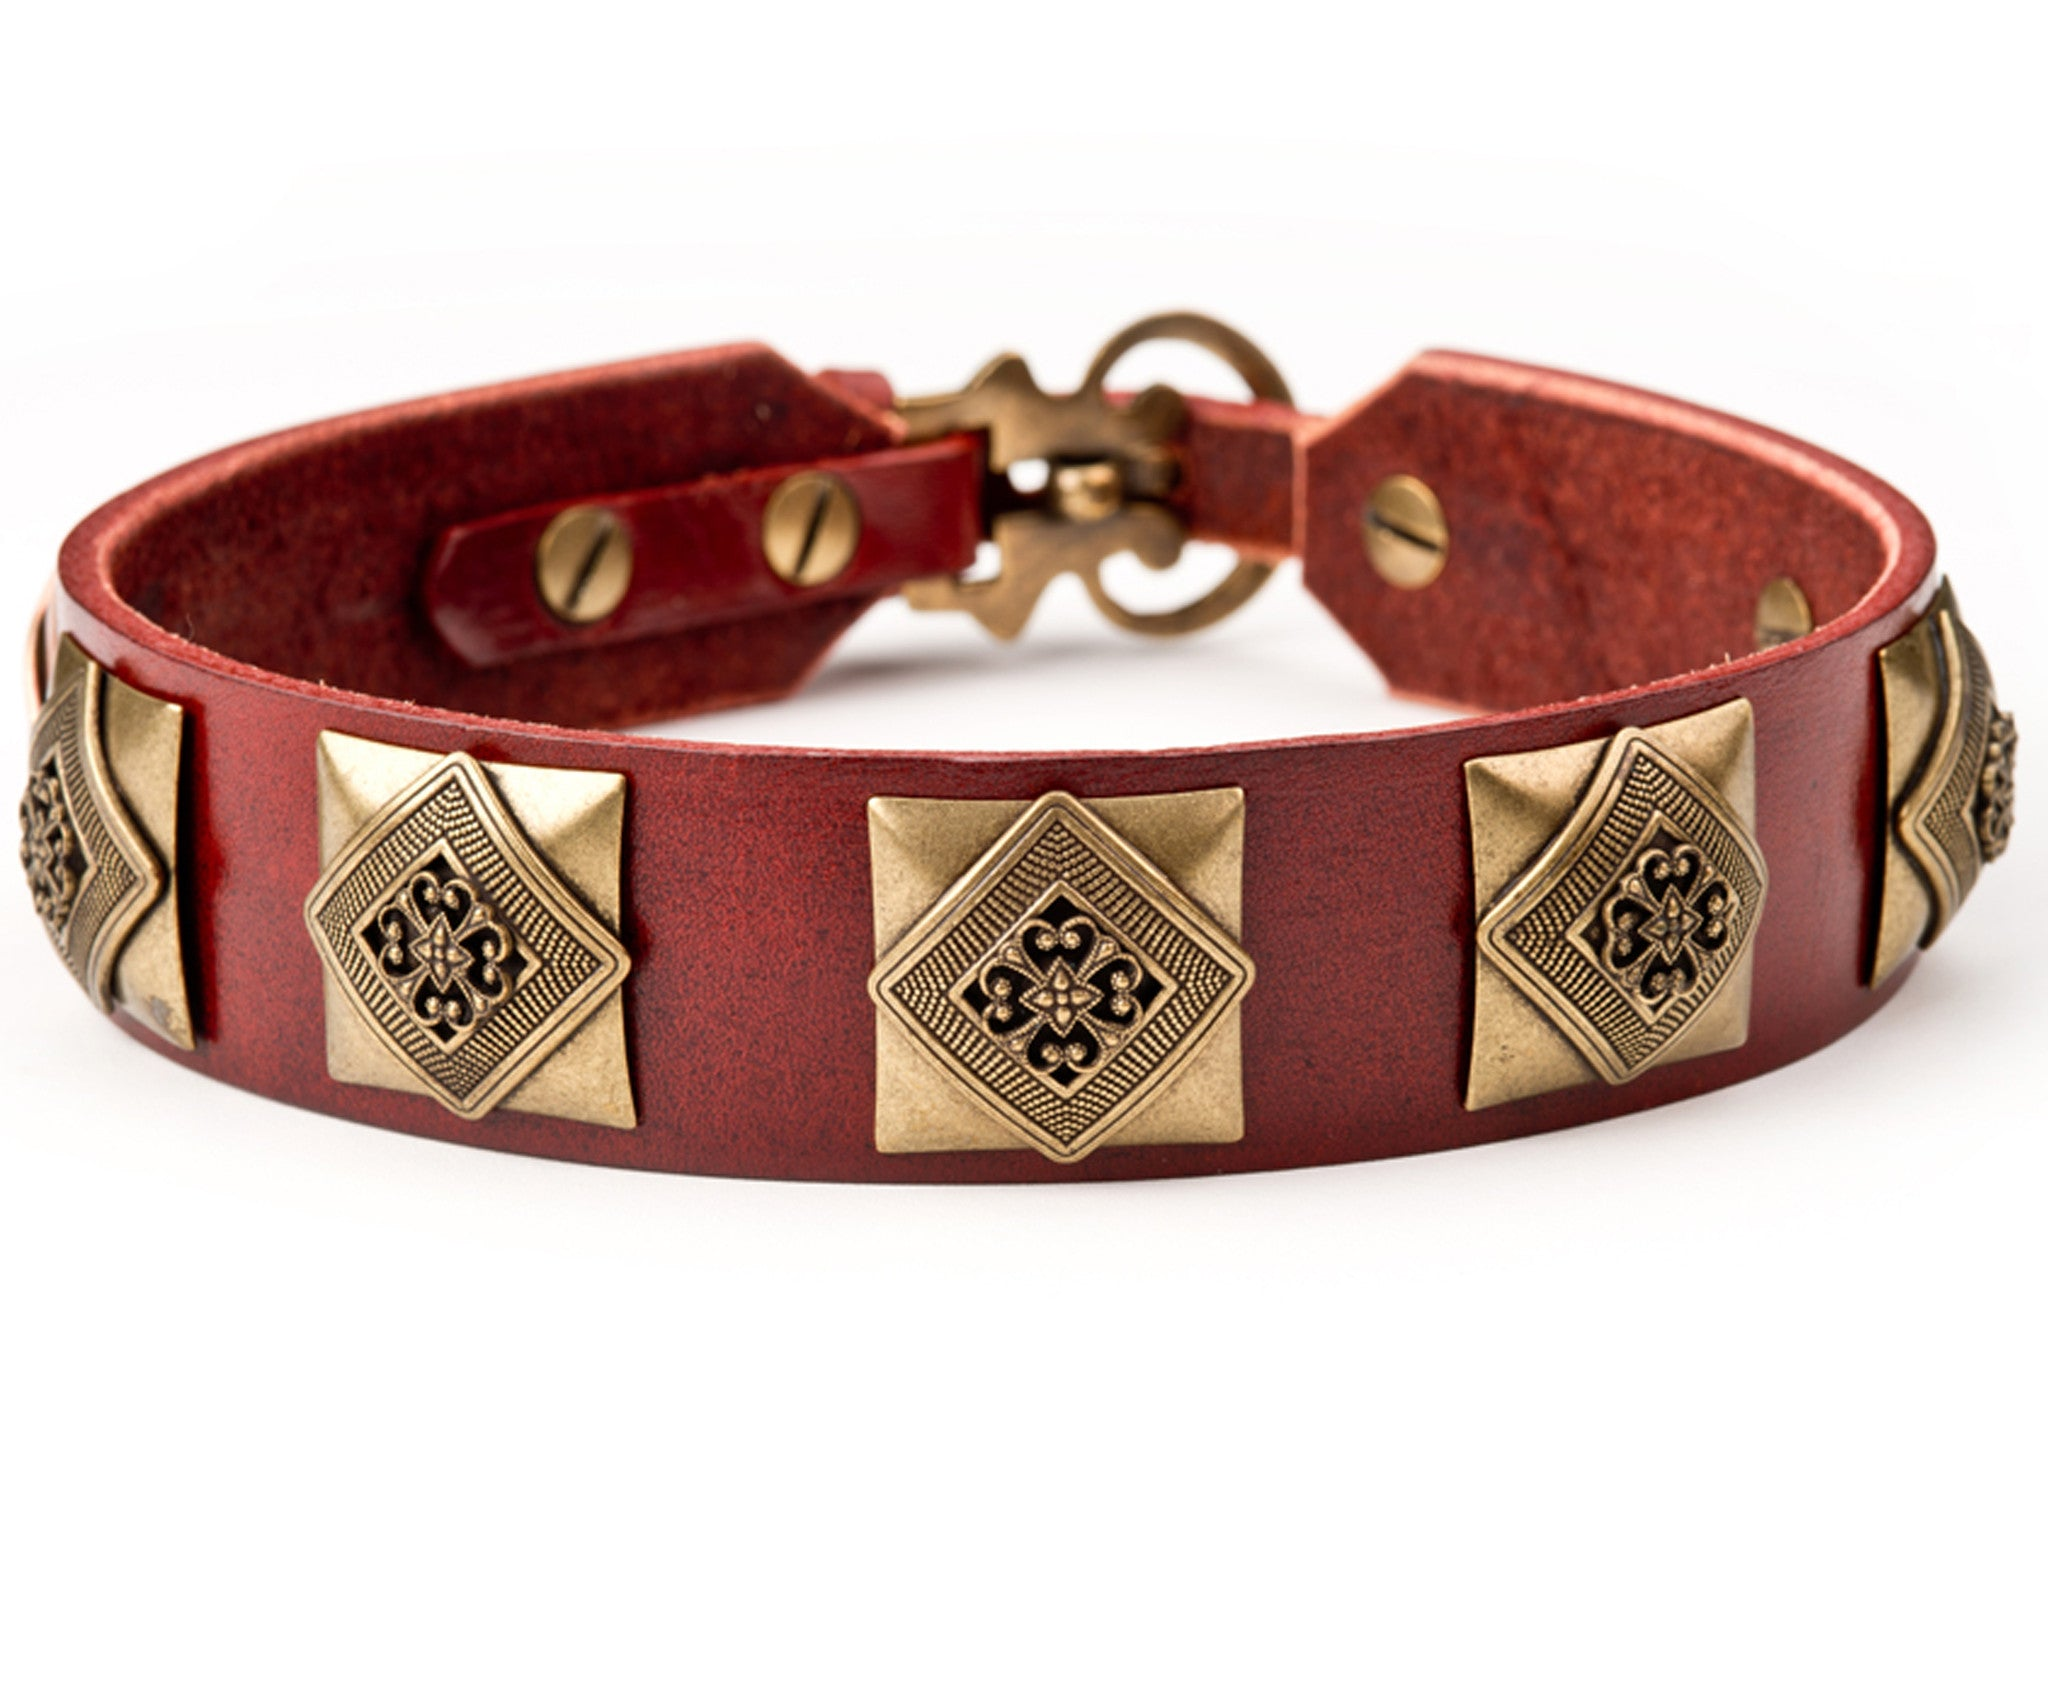 Collier Leeds Charlie leather dog collar